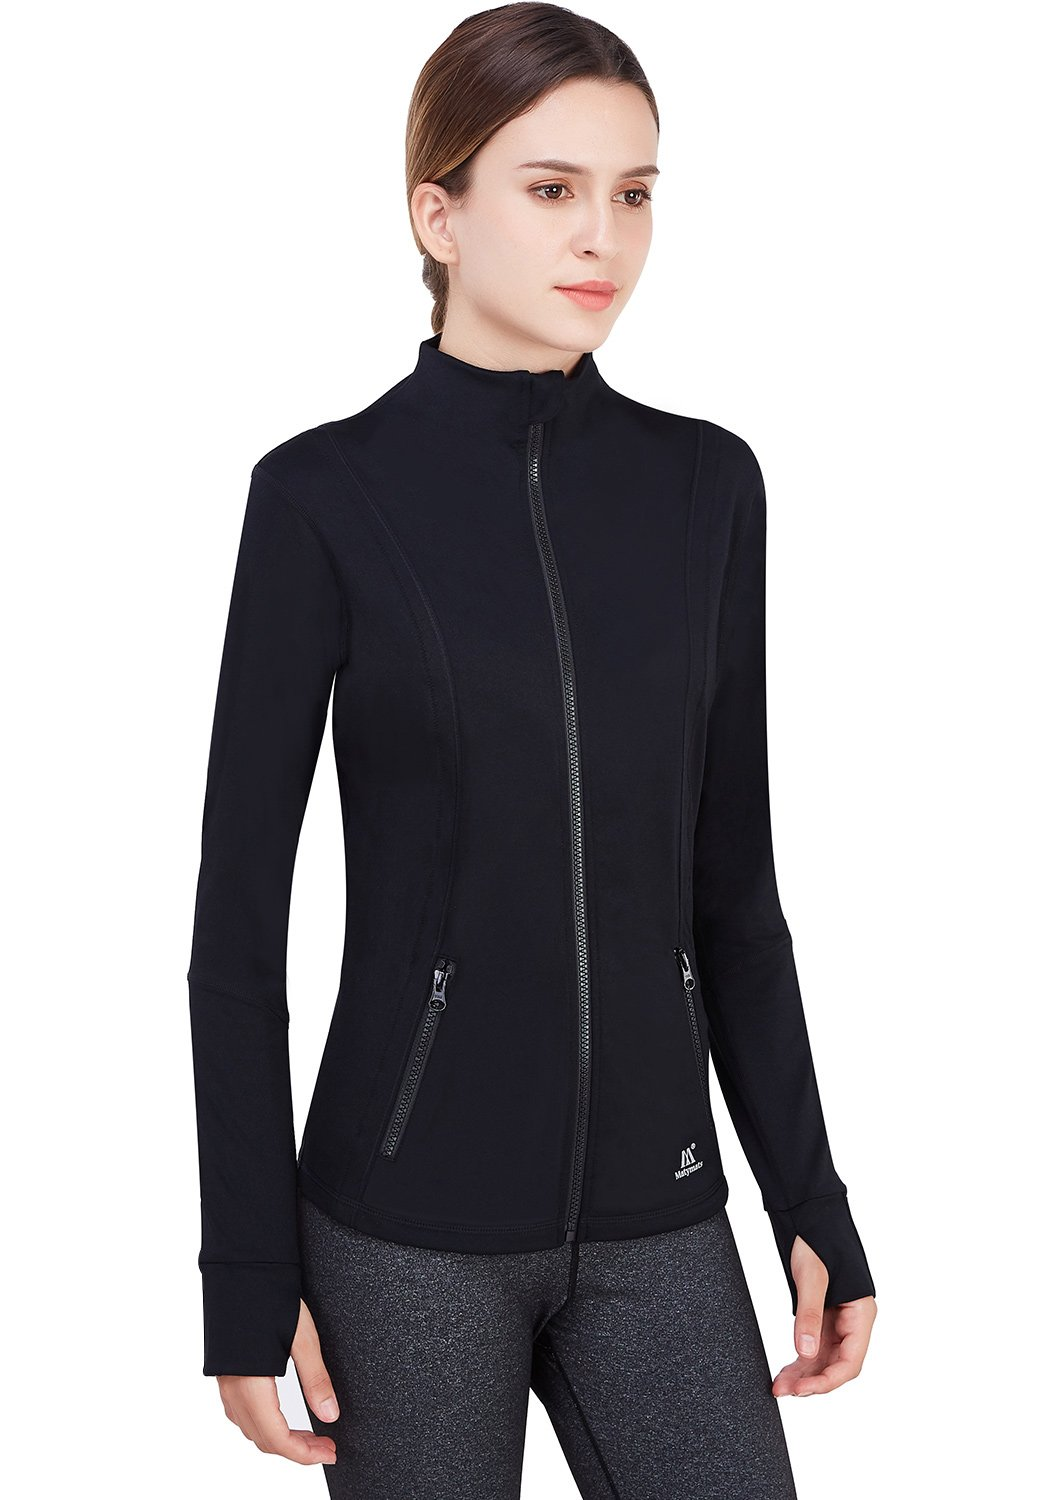 Matymats Women's Active Full-Zip Track Jacket Yoga Running Athletic Coat With Thumb Holes,Large,Black